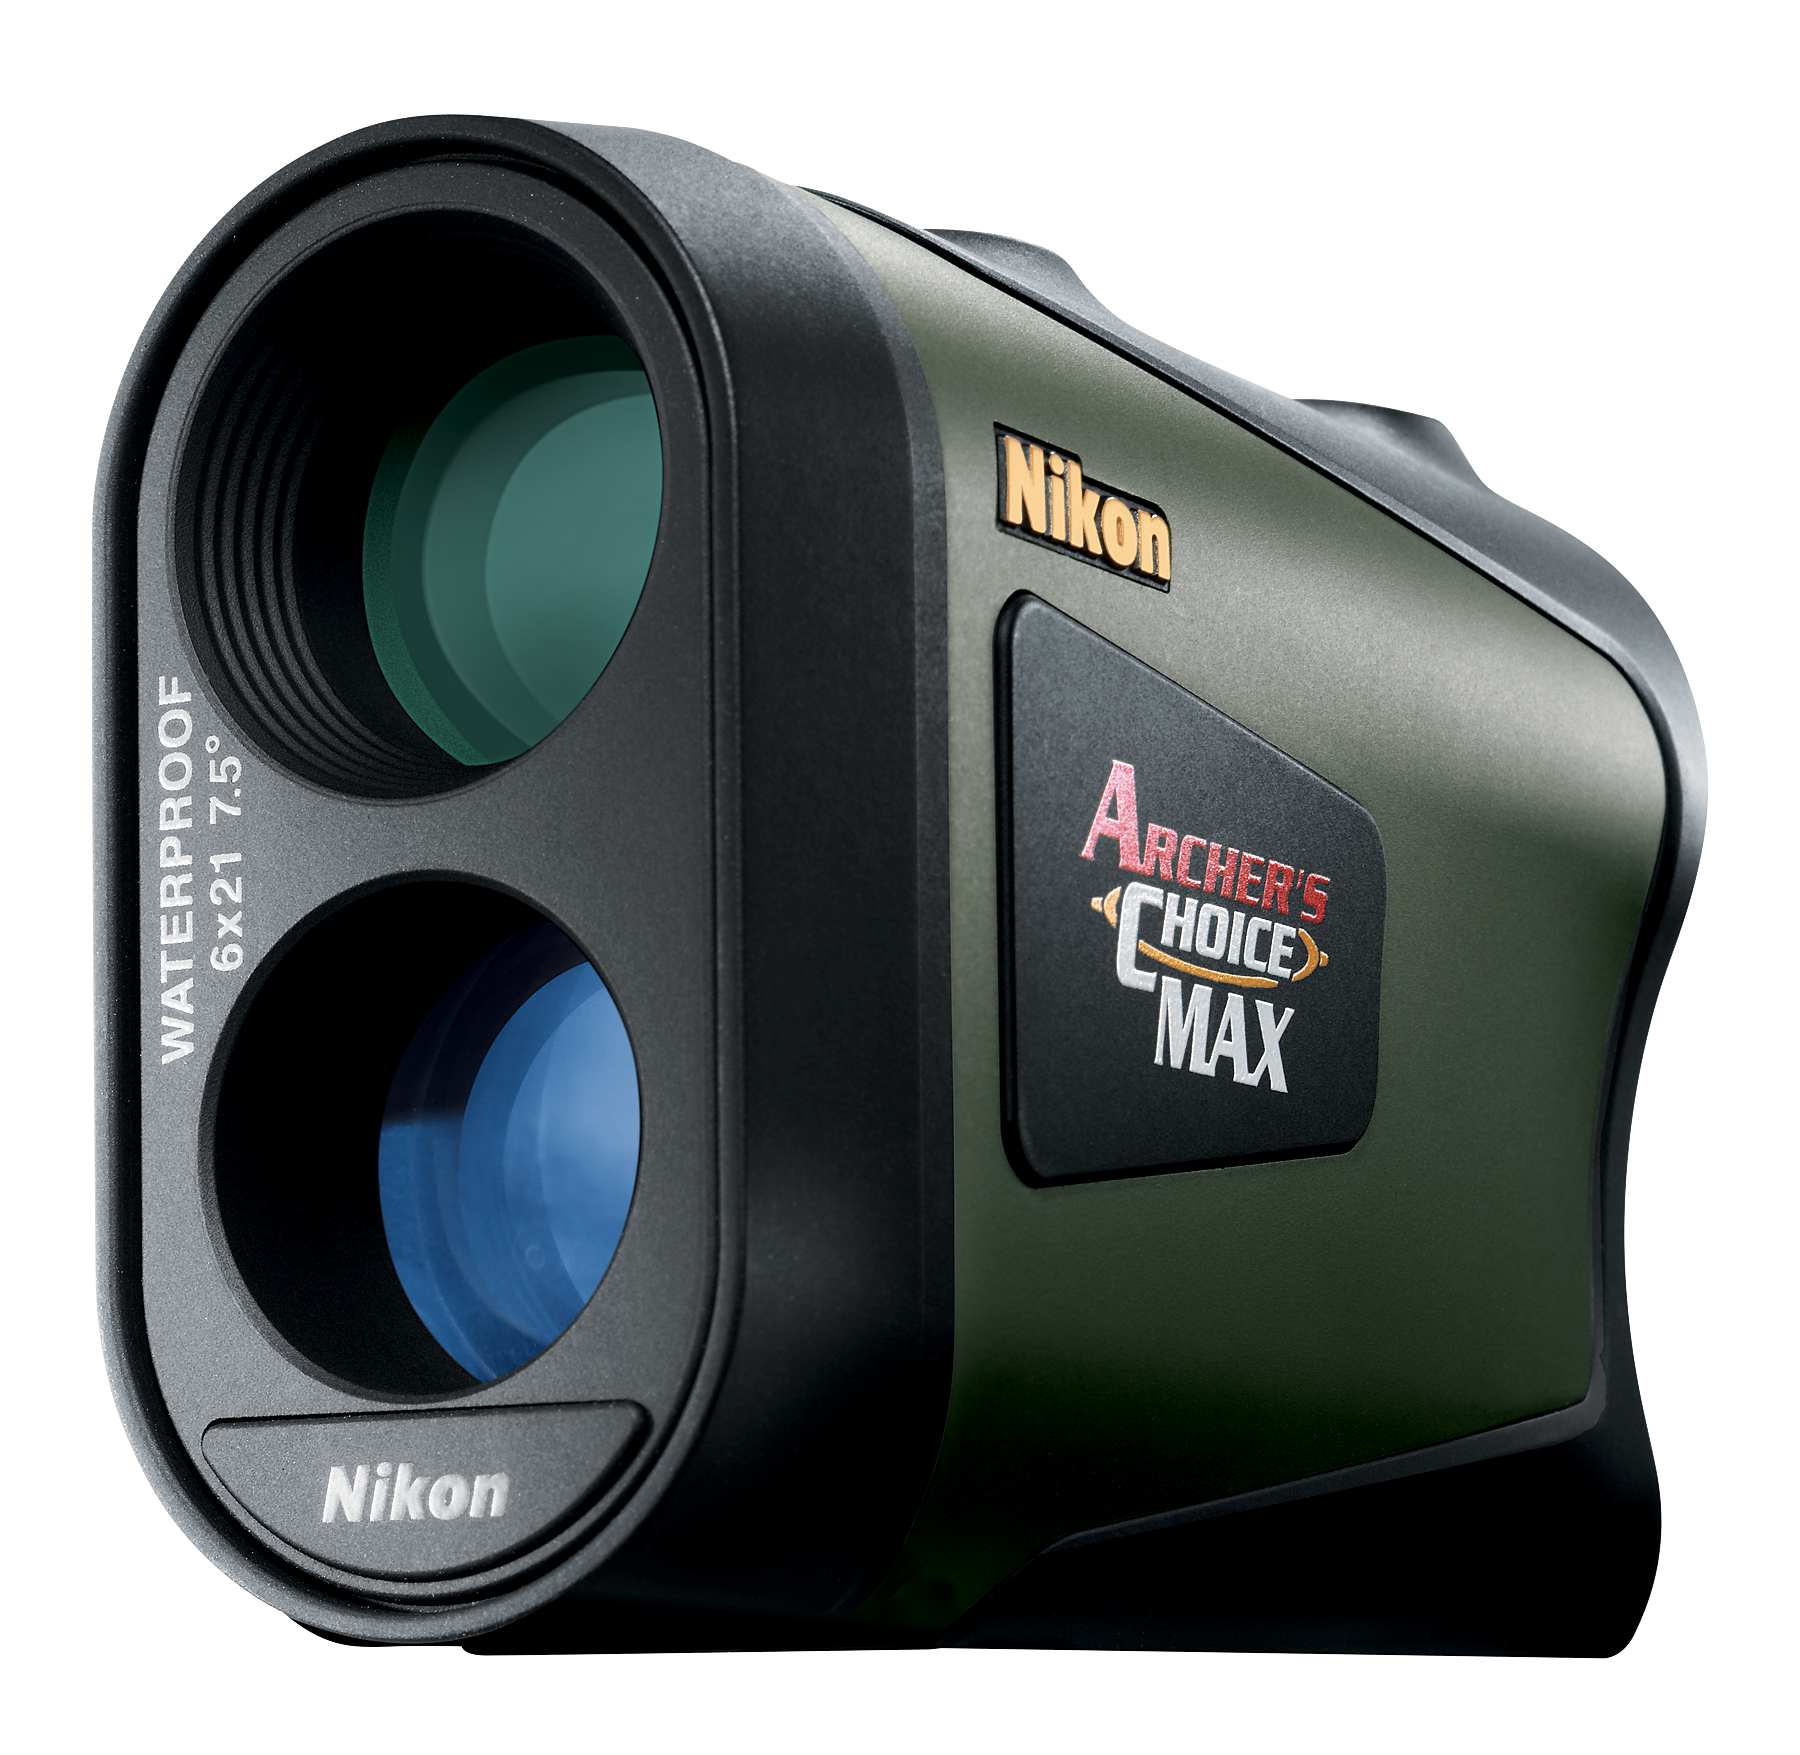 Nikon 8376 Archers Choice Max 6x 21mm 7.5 degree FOV 18.3mm Black/Grn